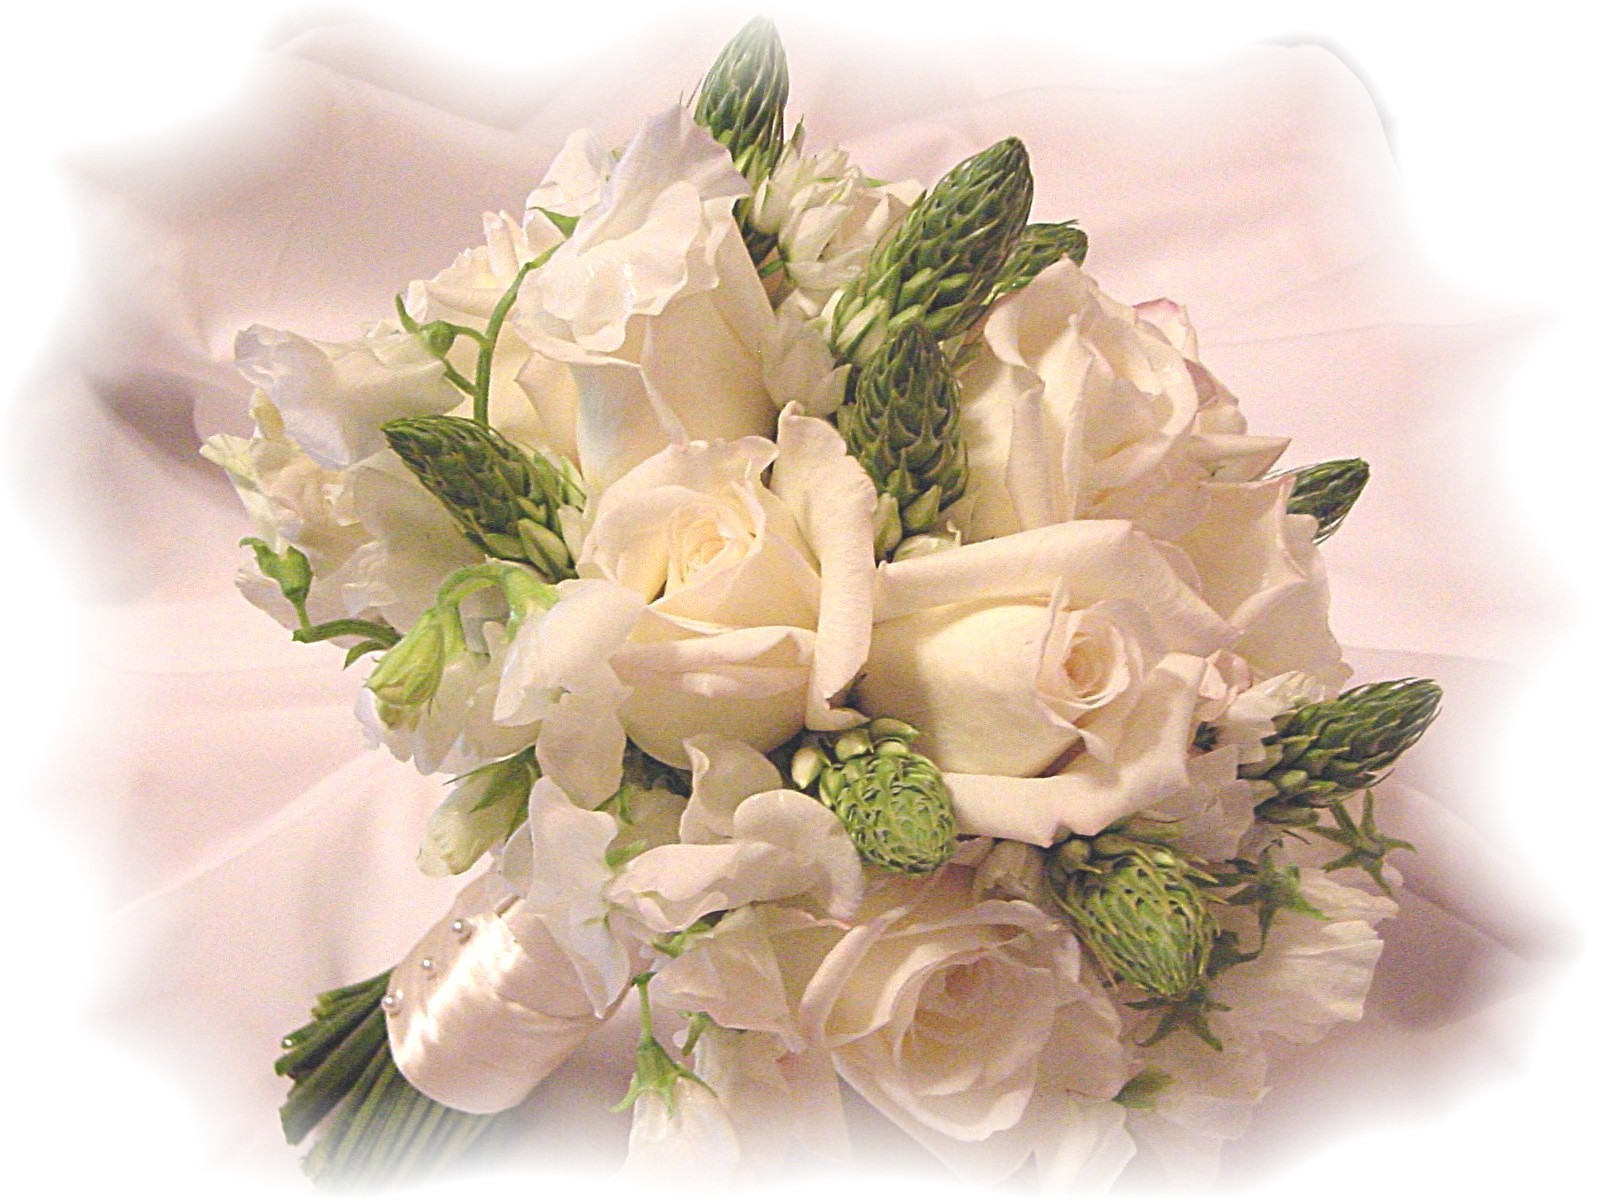 Best ideas about DIY Flowers For Wedding . Save or Pin Brides Stretch Wedding Bud s with Do It Yourself Now.